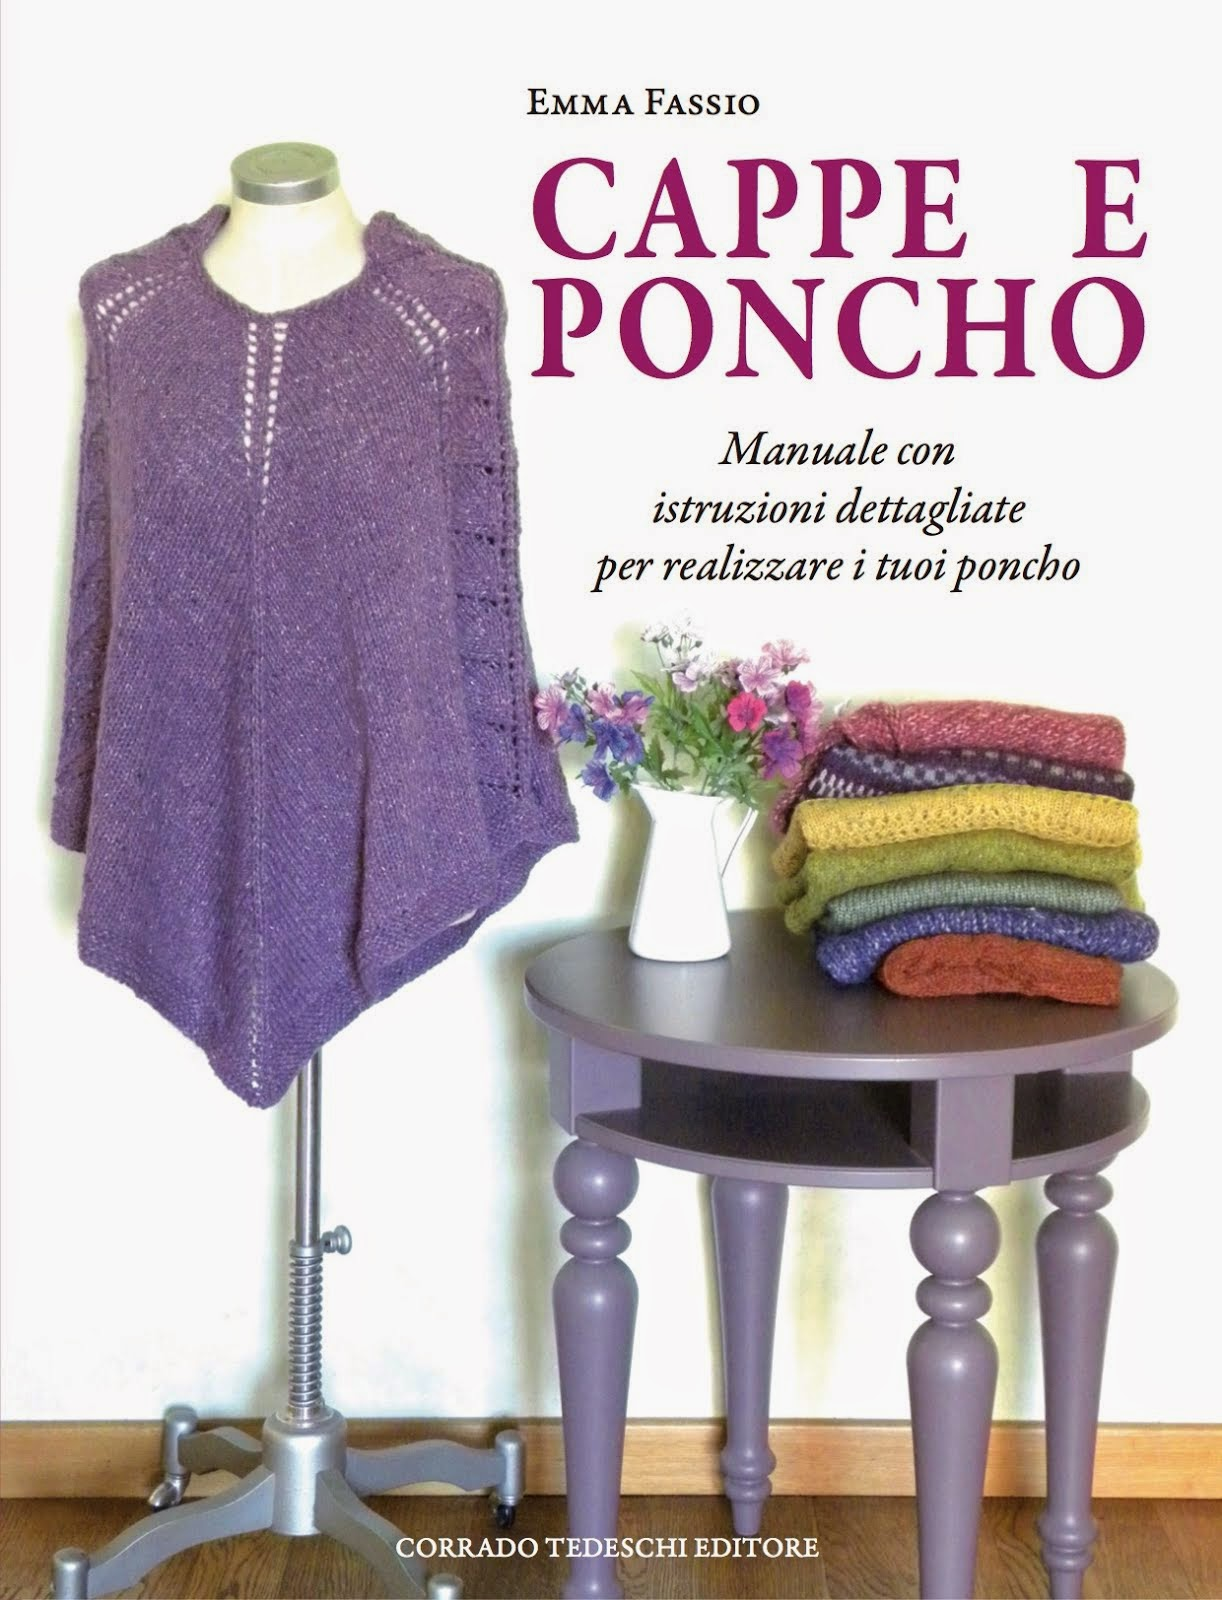 Libro Cappe e Poncho